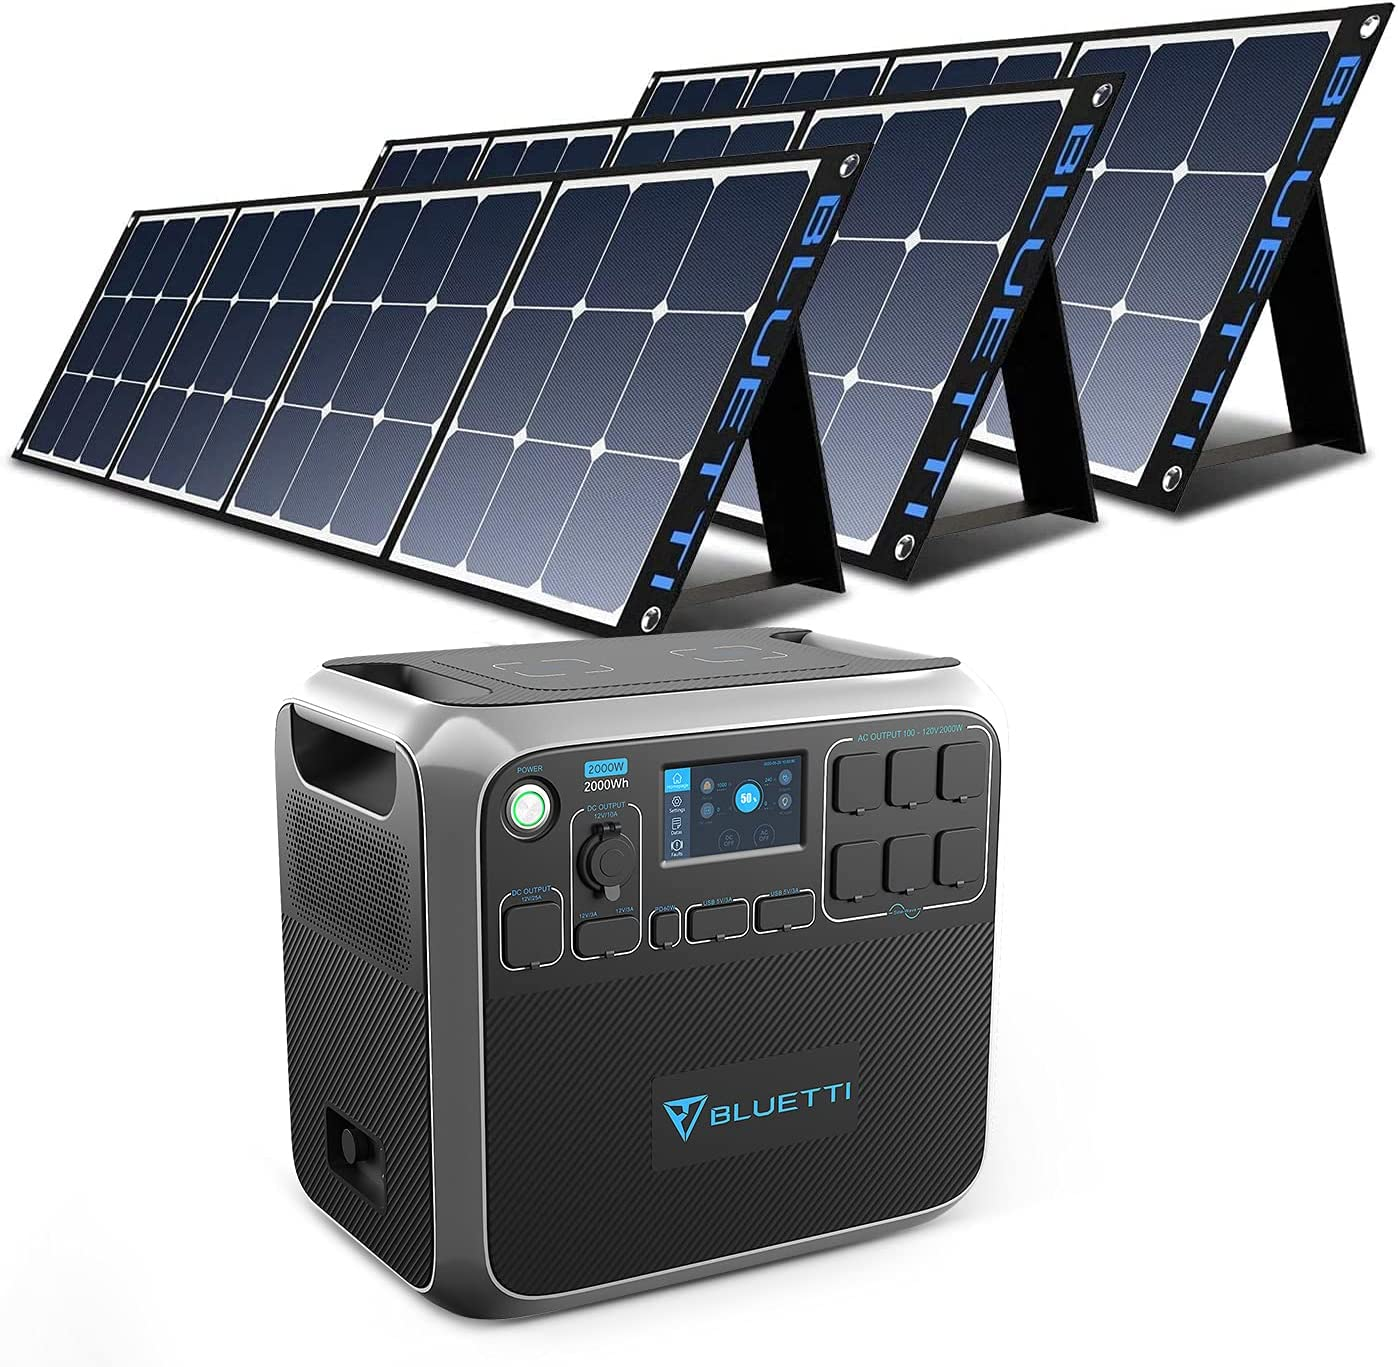 BLUETTI AC200P Portable Power Station with Solar Panel Included 2000W Solar Generator Kit with 3pcs 200W Foldable Solar Panel, 6 120V AC Outlet Lithium Battery Backup for Home Use Outdoor Camping RV